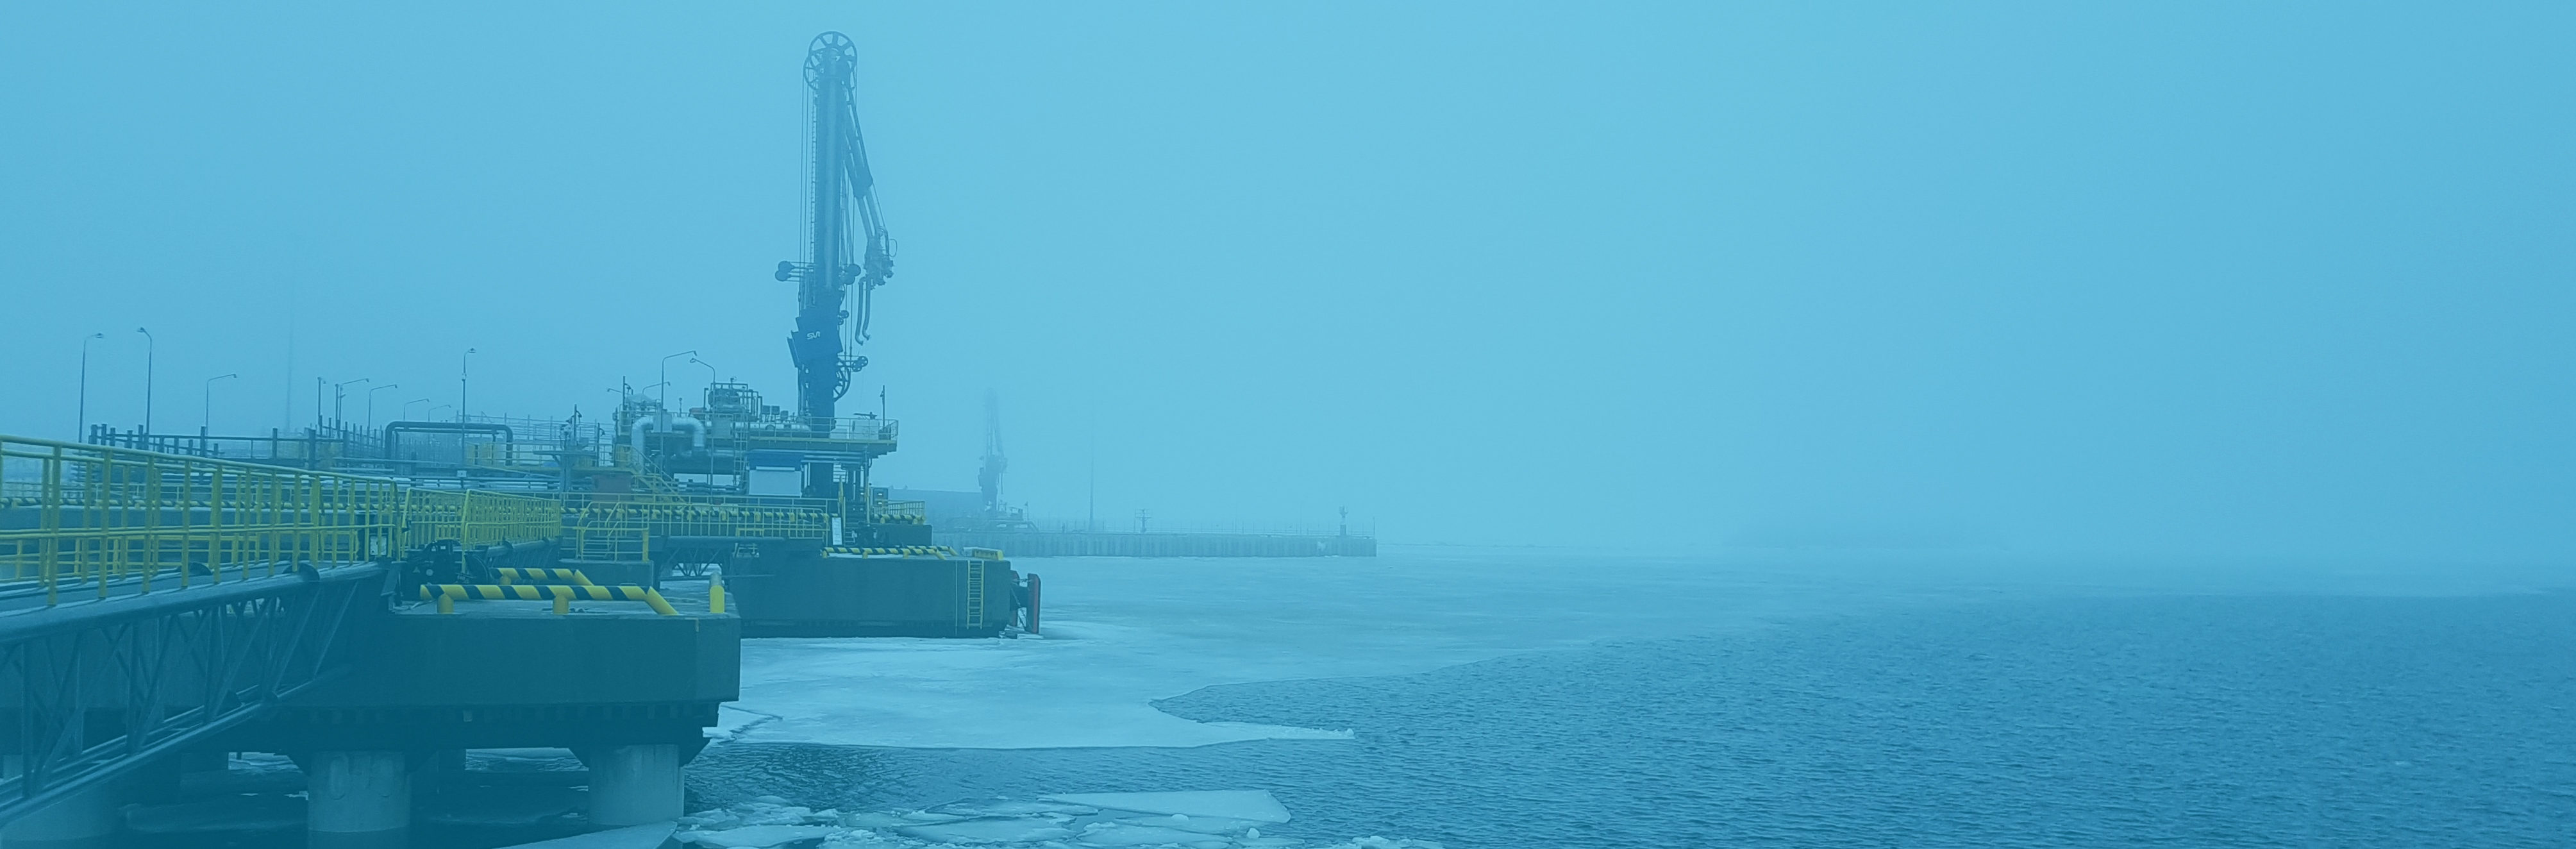 Equipping the Cryogas Vysotsk Terminal